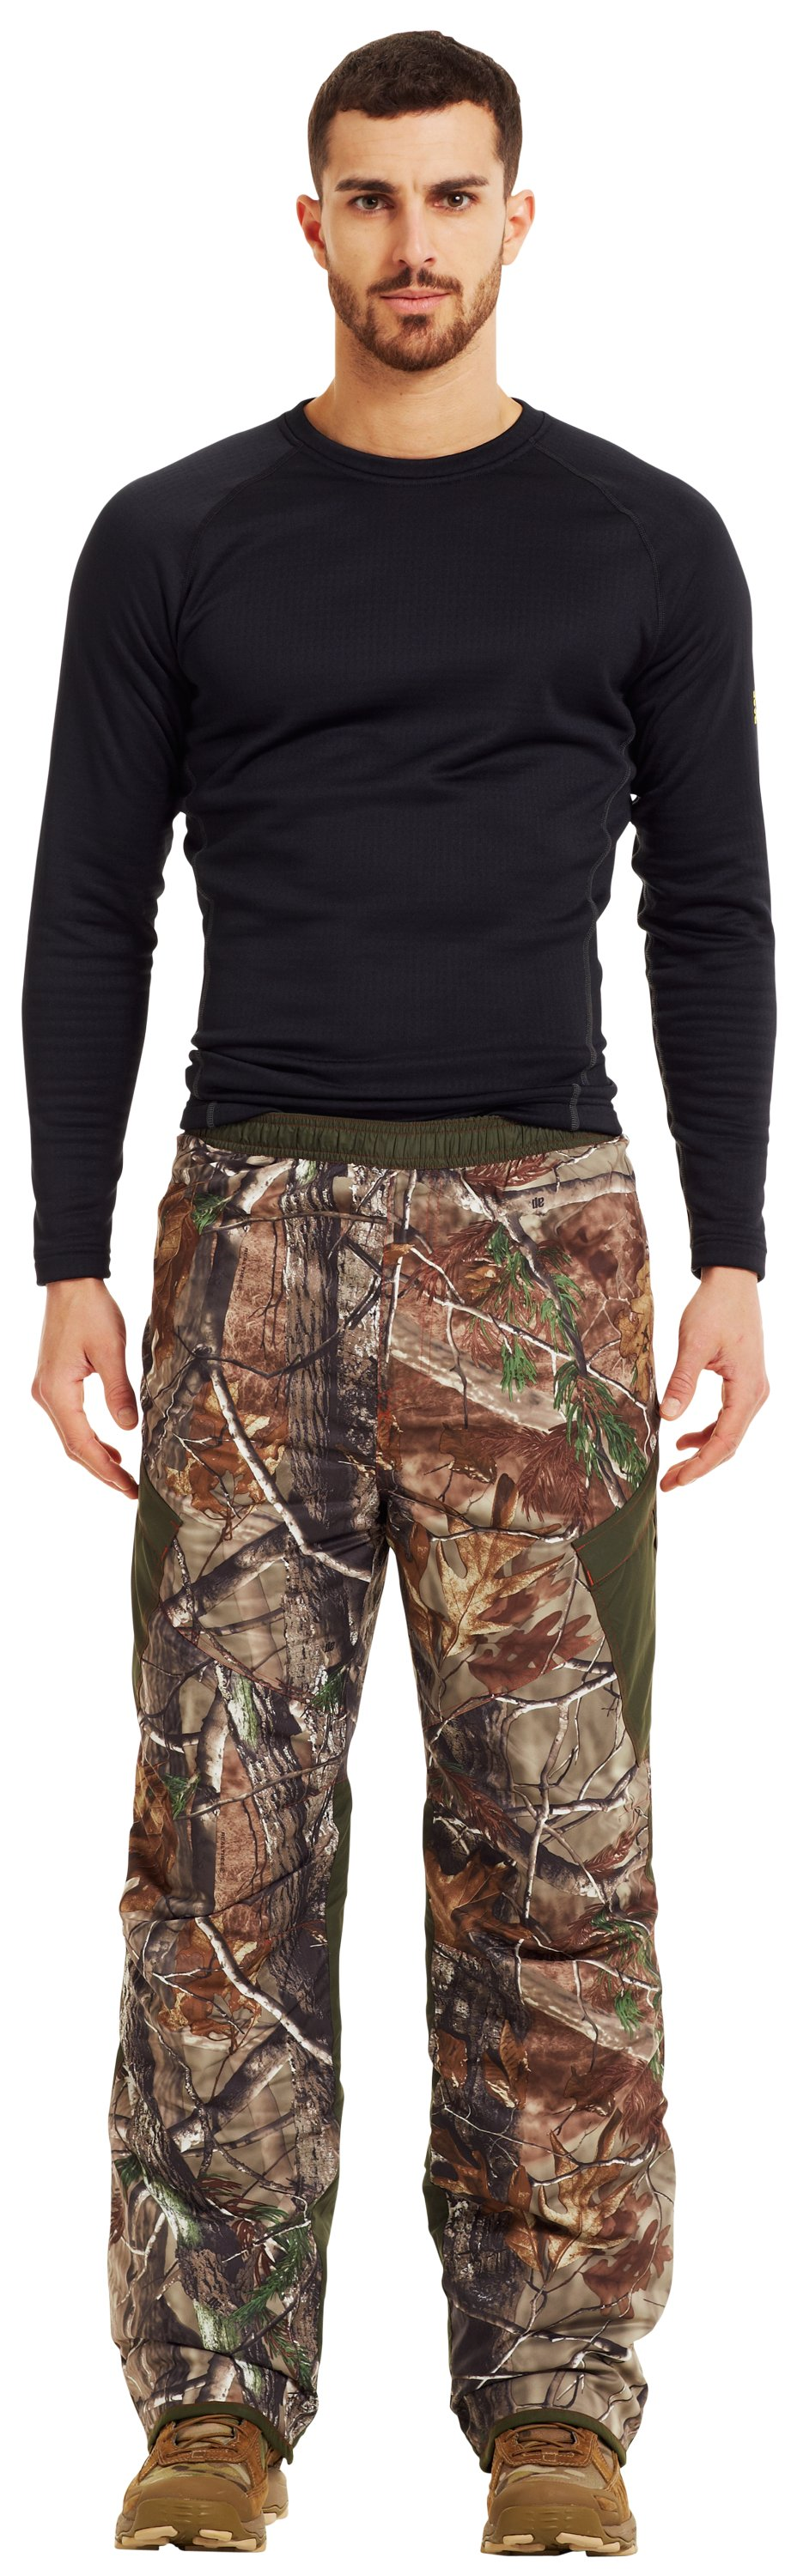 Men's ColdGear® Infrared Ridge Reaper® Primaloft® Pants, REALTREE AP-XTRA